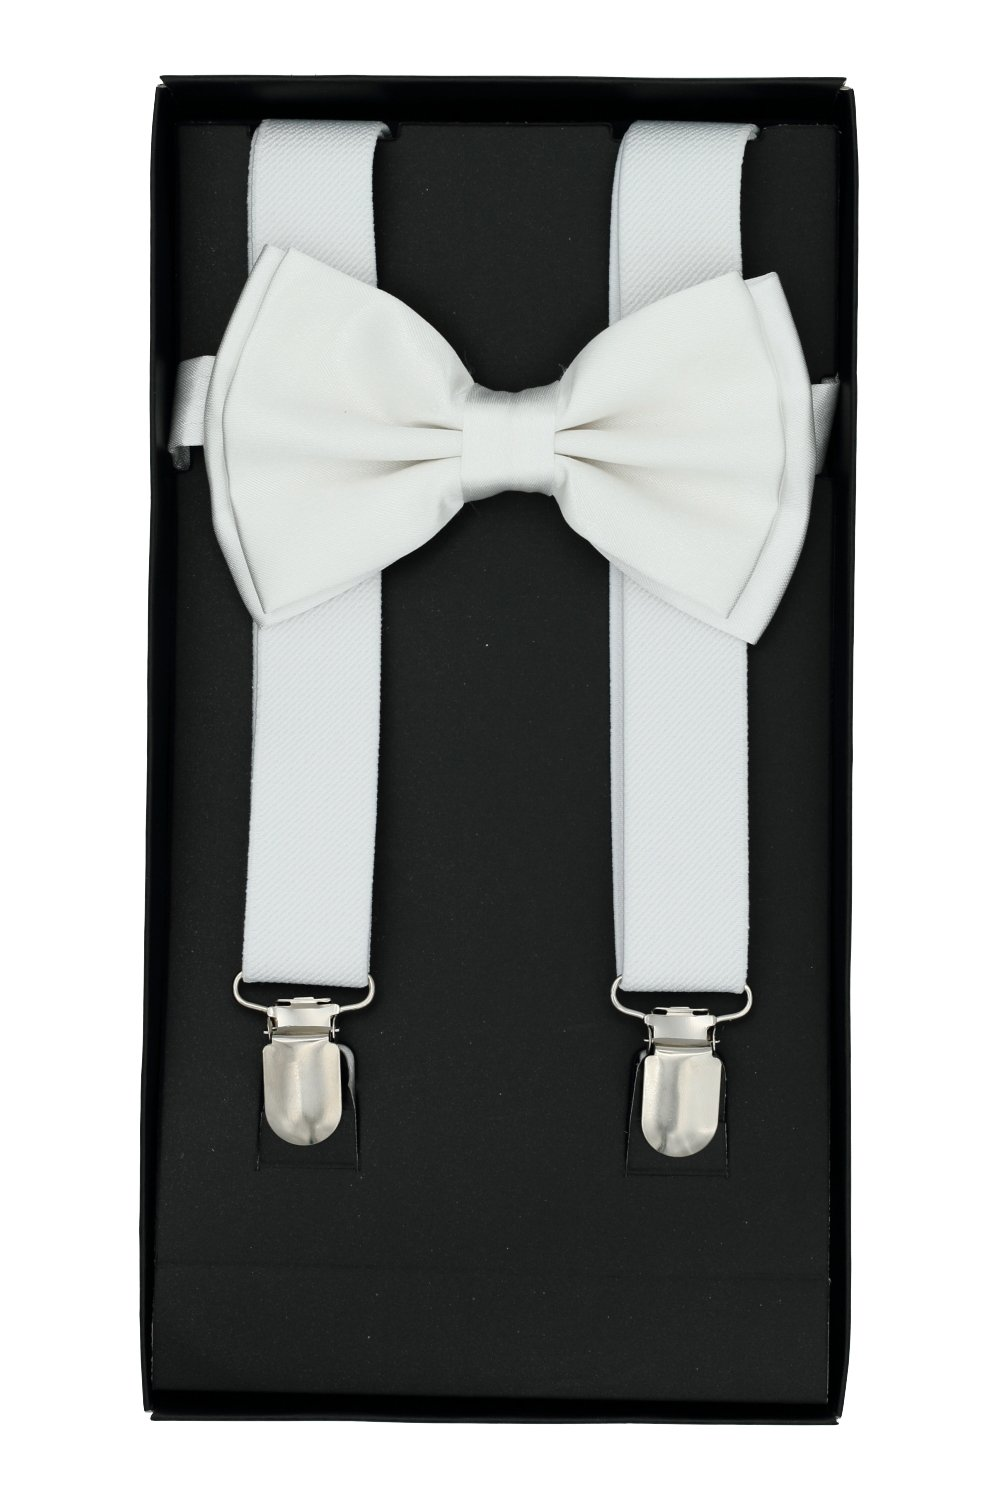 Buha Suspenders for Men, 2 in 1 Suspenders and Bow Tie, Mens Outfits Casual Suspender and Bow Tie Special Edition (White)